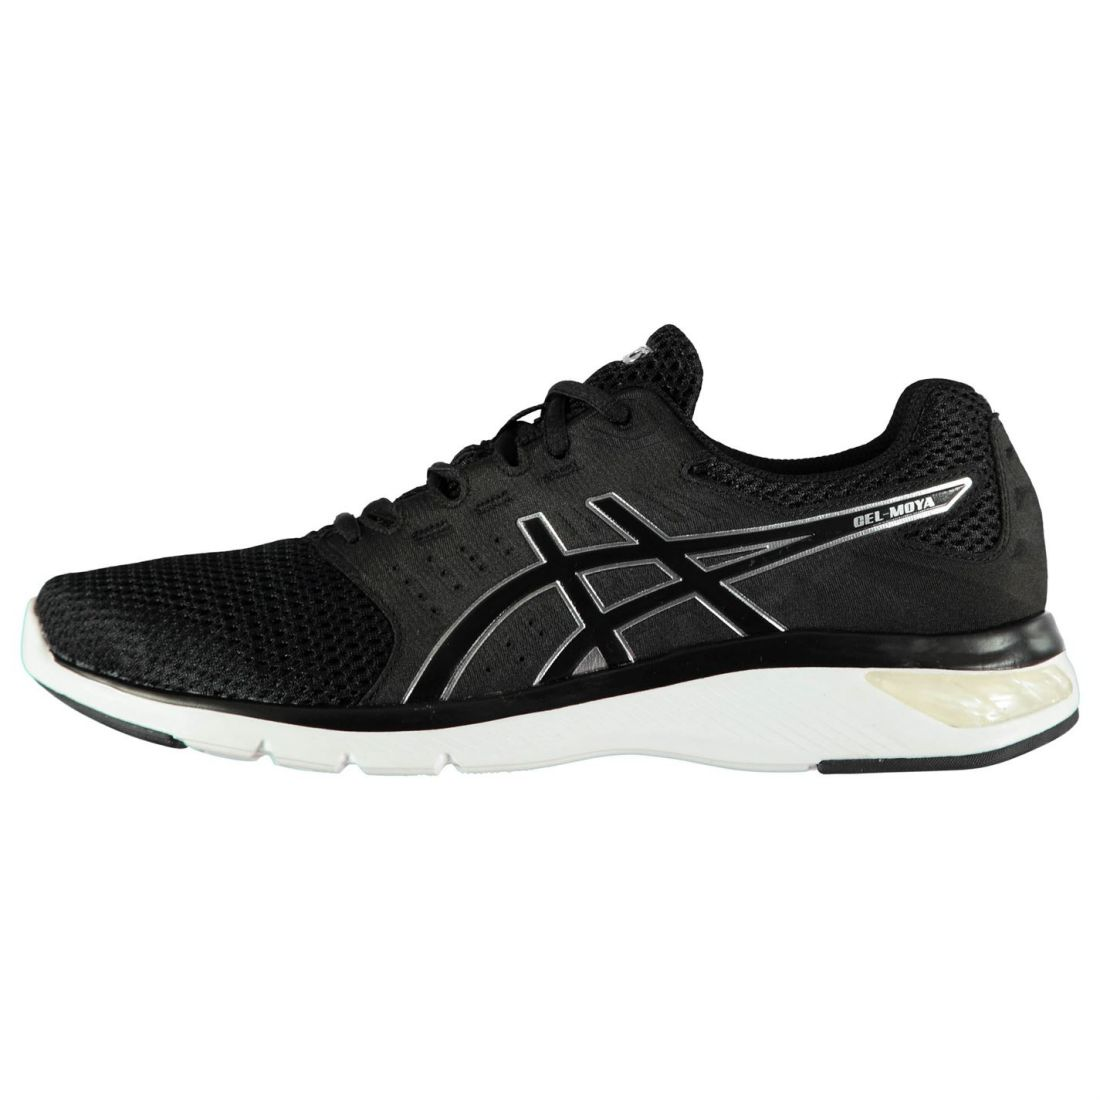 Asics Mens Gel Moya Running Shoes Road Lace Up Breathable ... d739b274d